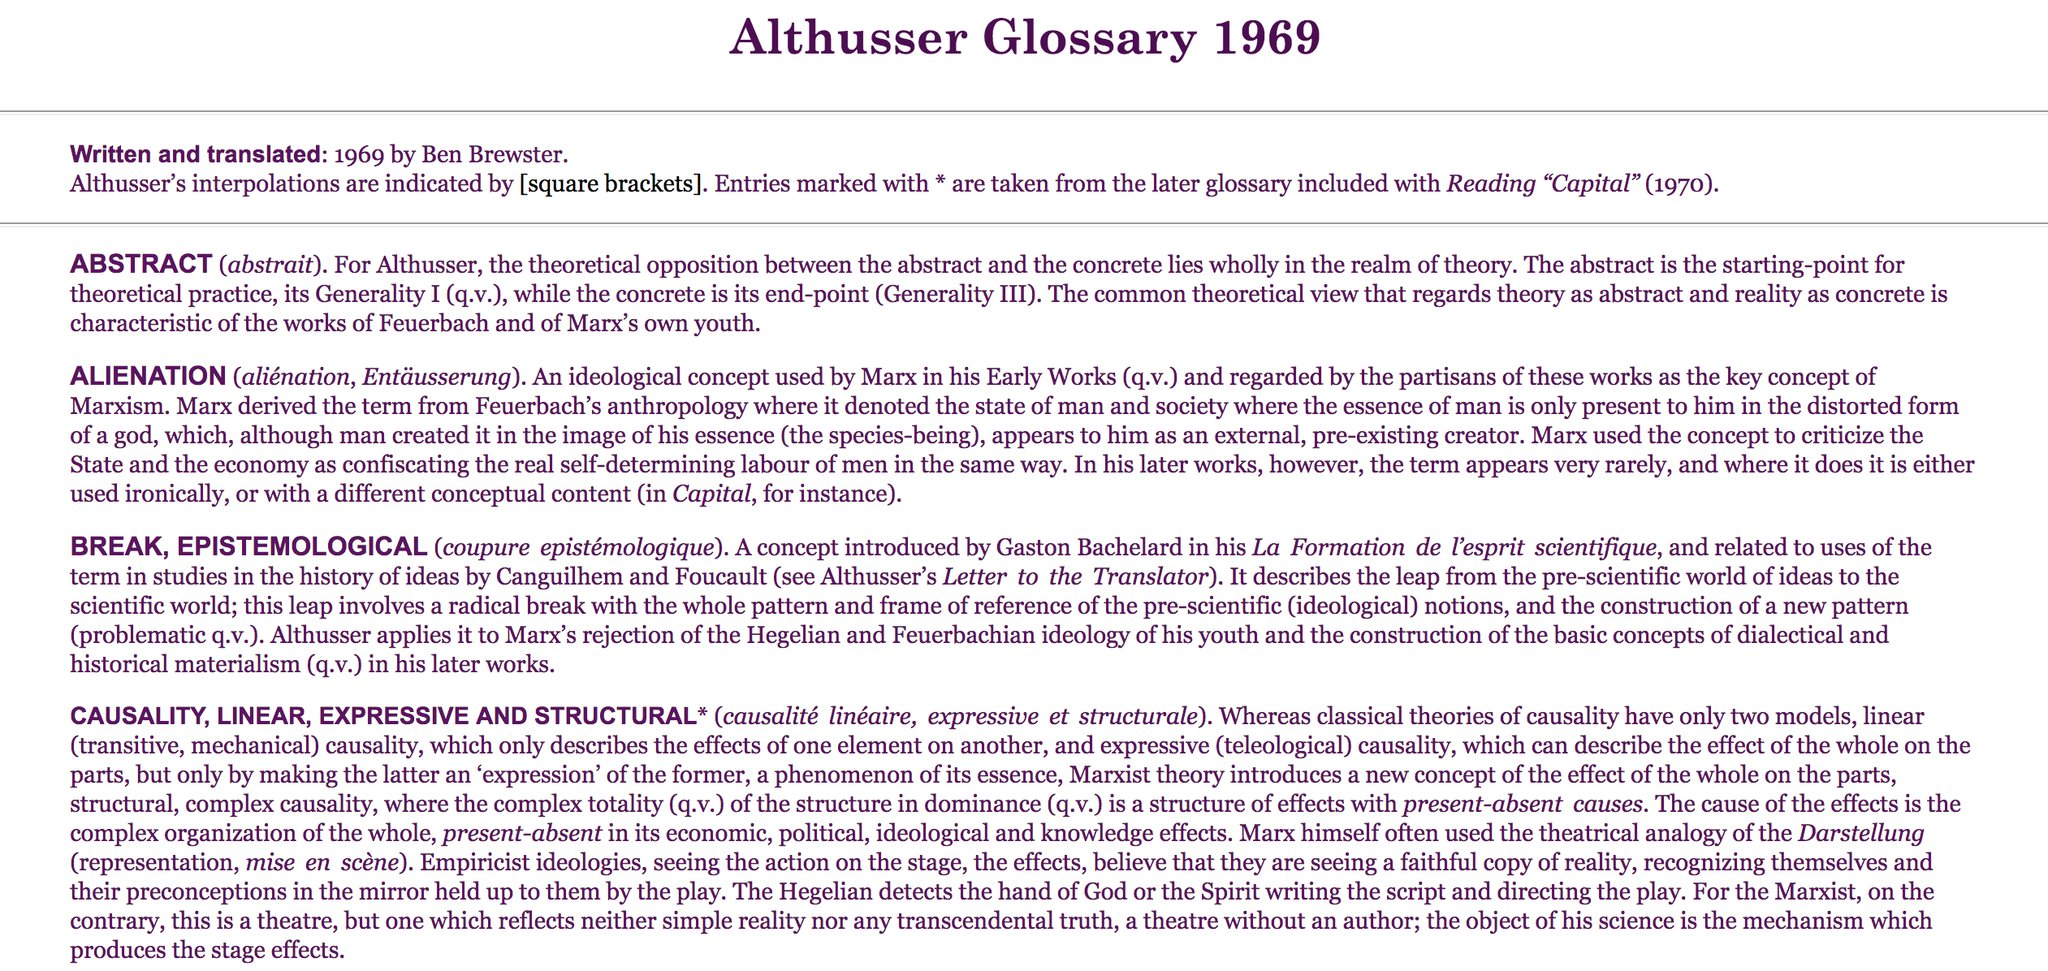 This Althusser glossary from 1969…